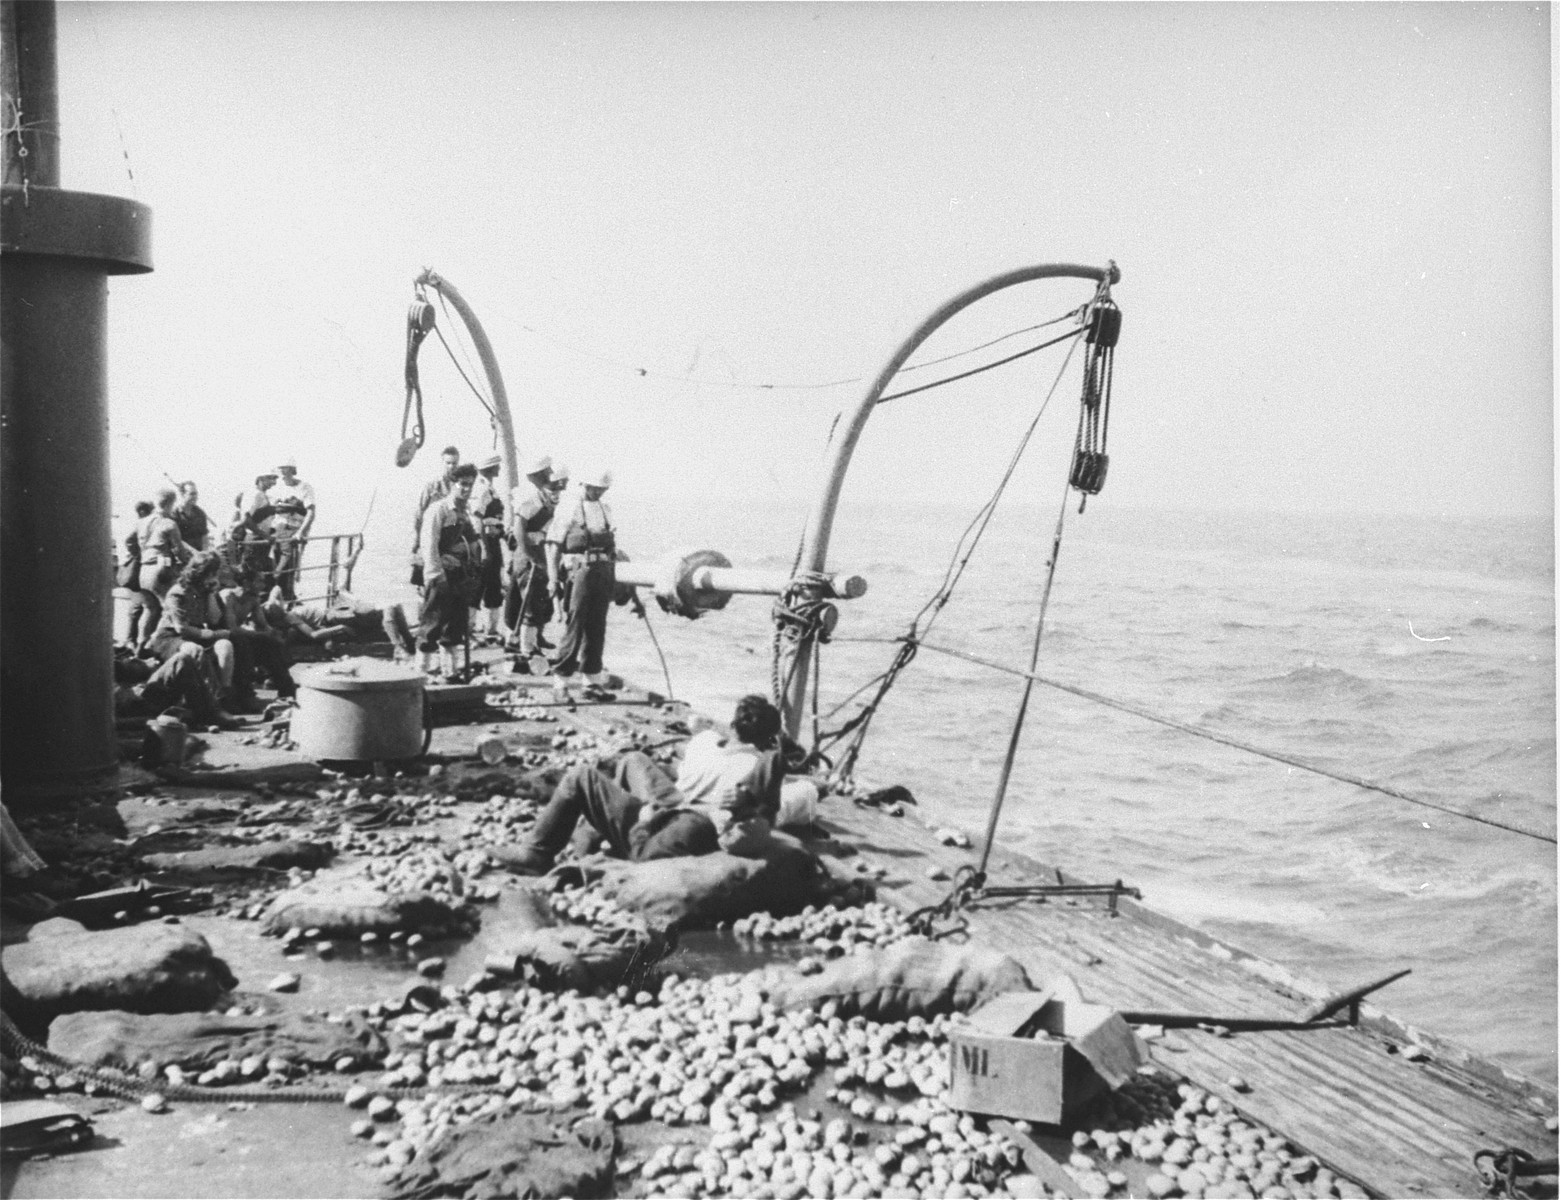 Jewish passengers and British marines stand on the deck of the Exodus 1947 amidst the debris from the previous night's struggle.